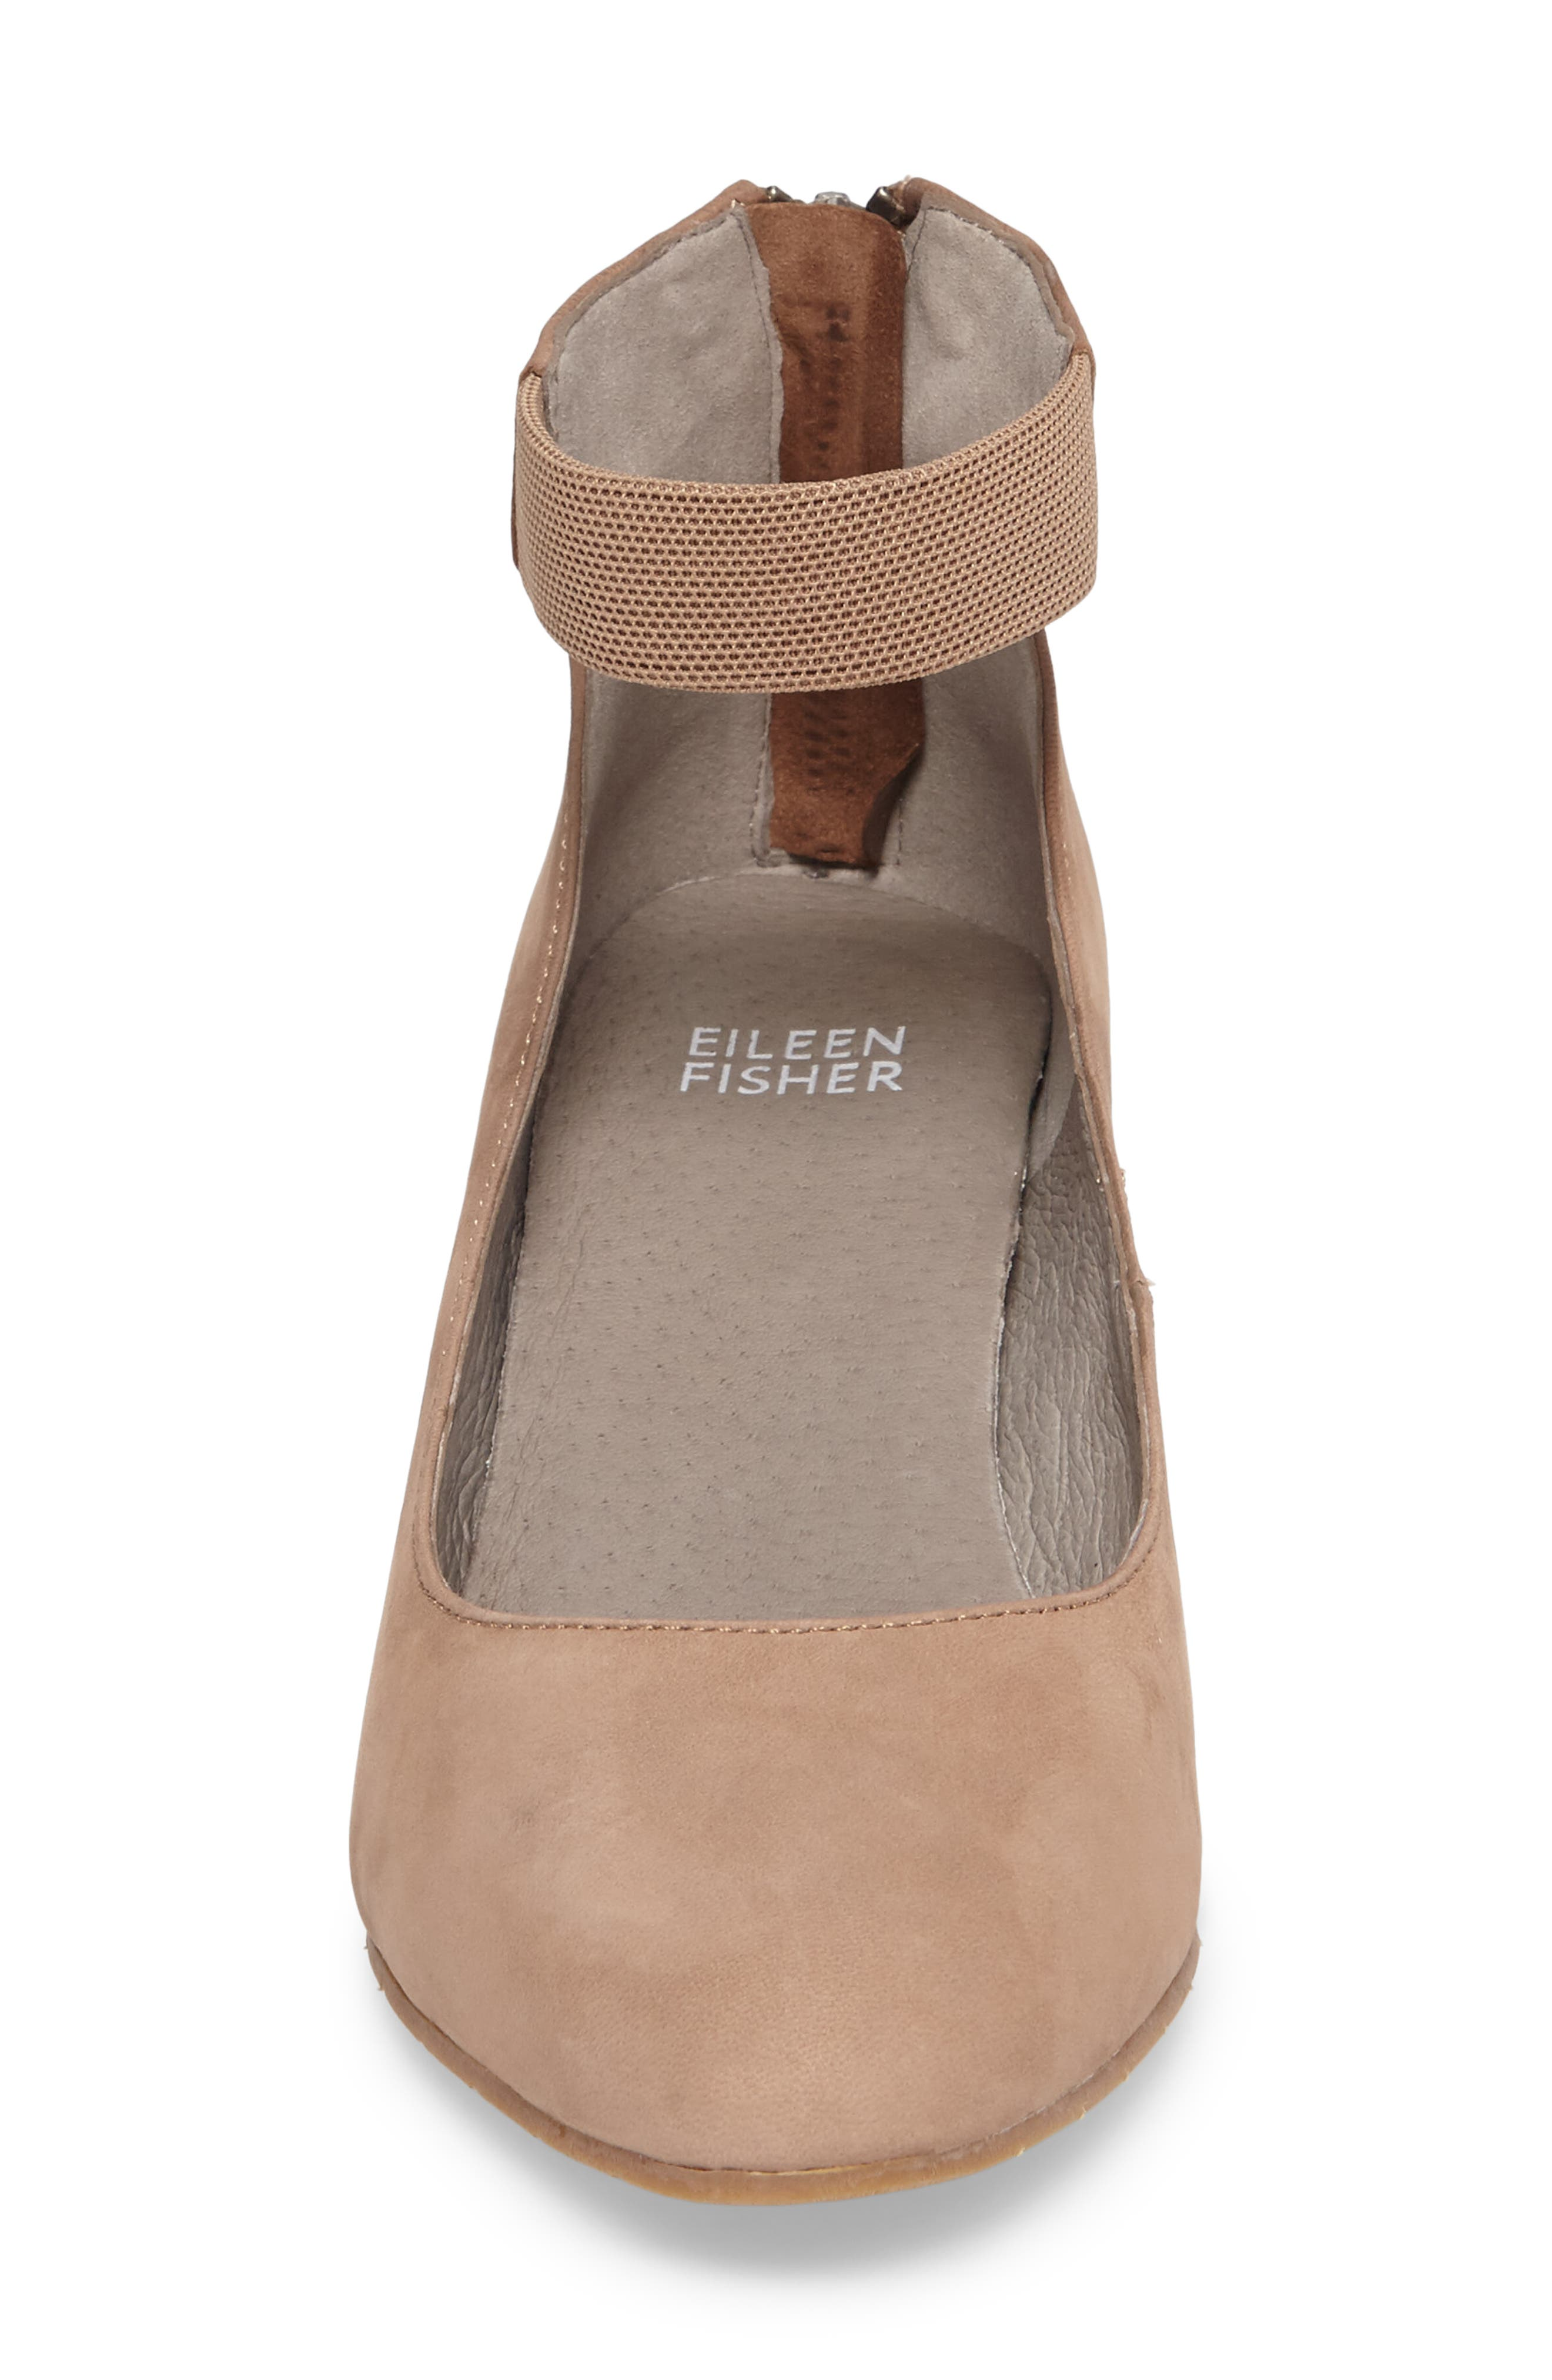 'Liz' Ankle Strap Pump,                             Alternate thumbnail 7, color,                             Earth Nubuck